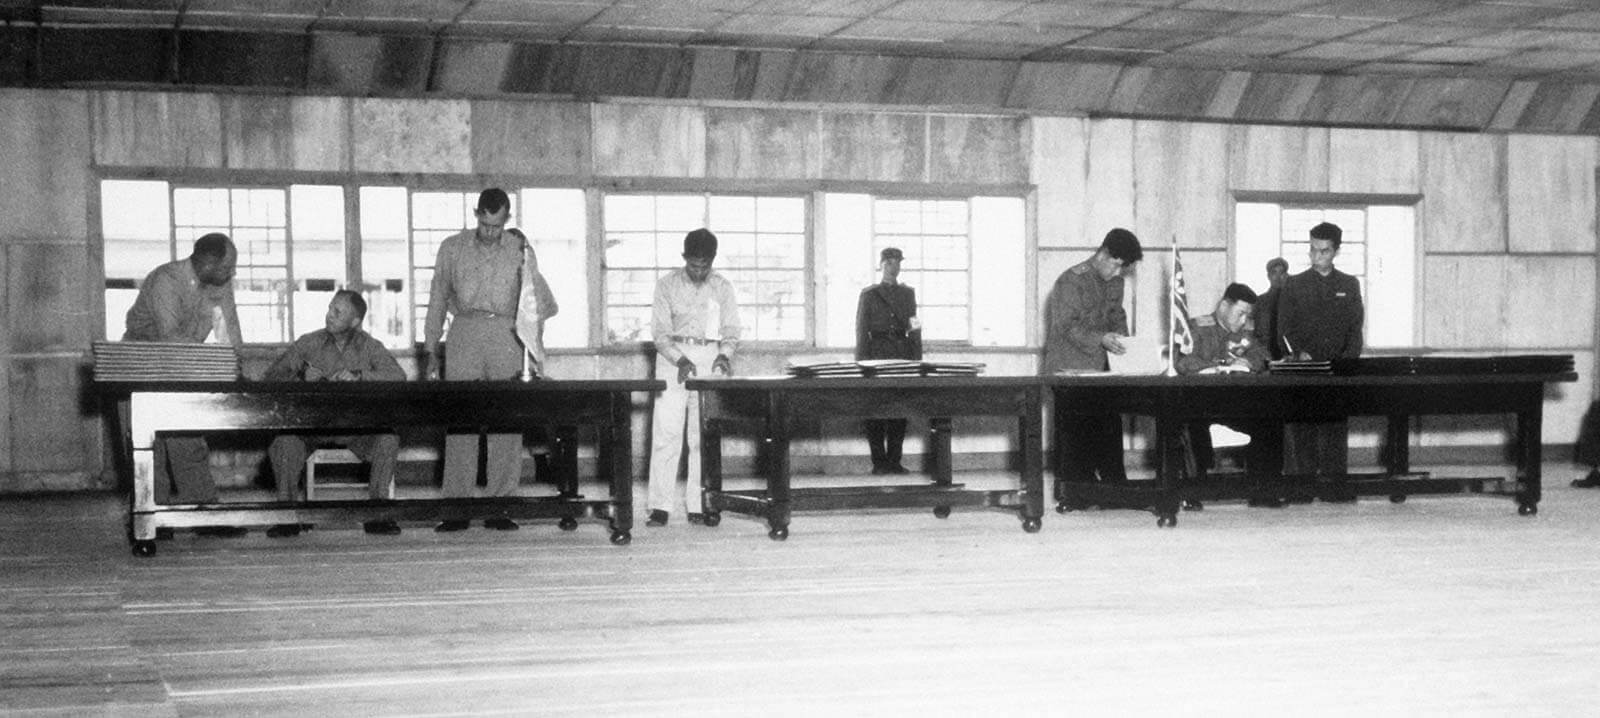 1953 Korean Armistice Agreement – Ceasefire On Korean War_JudicateMe